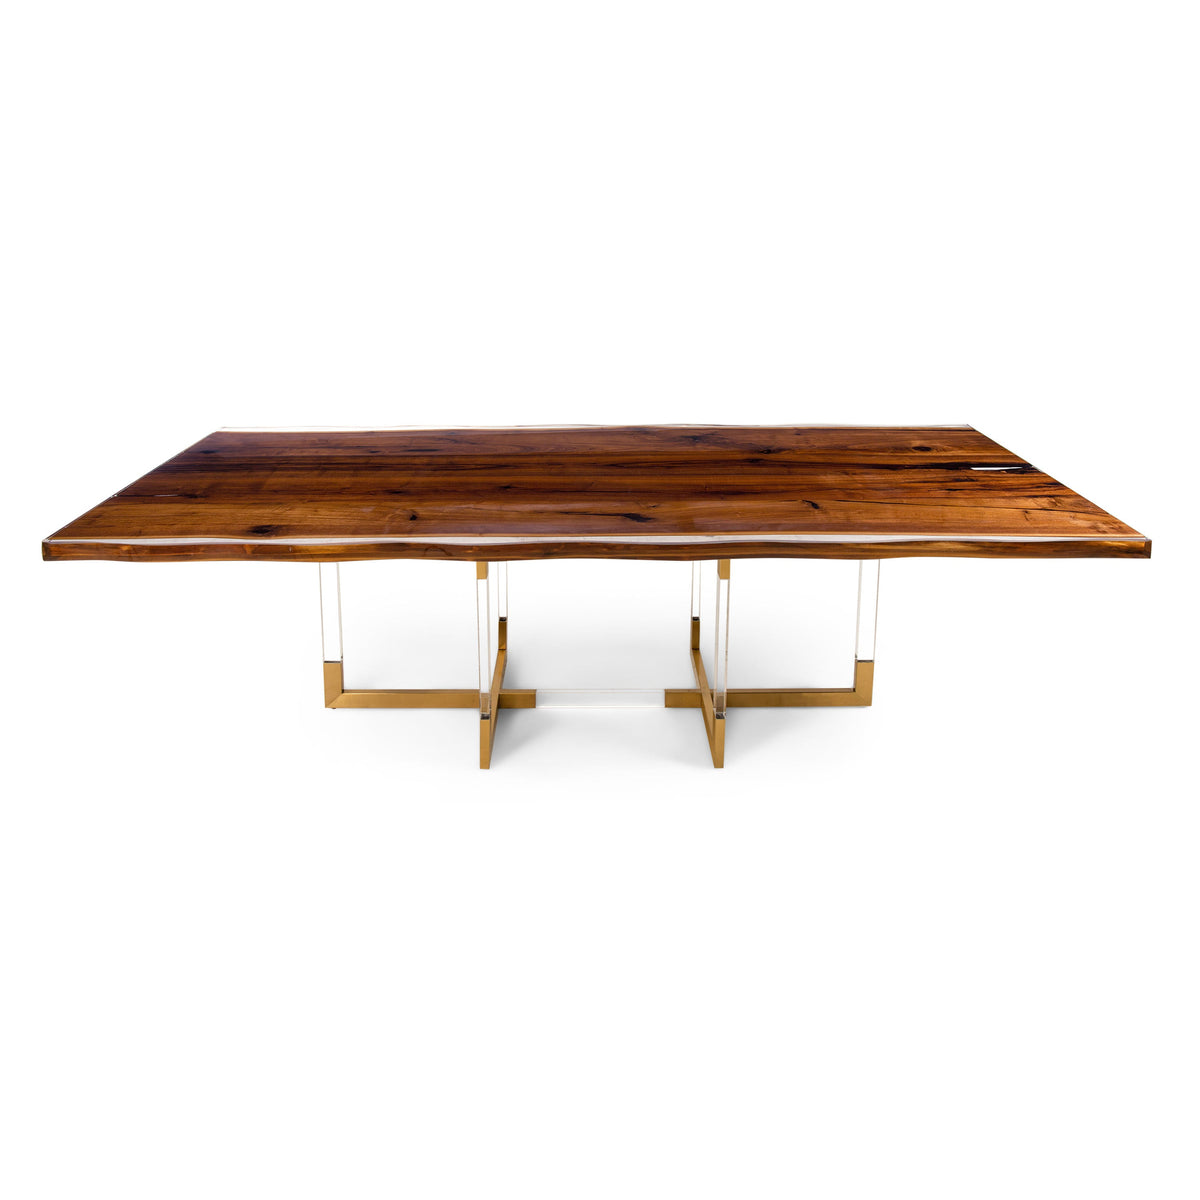 Live Edge Solid Walnut Slab Dining Table with Resin Finish